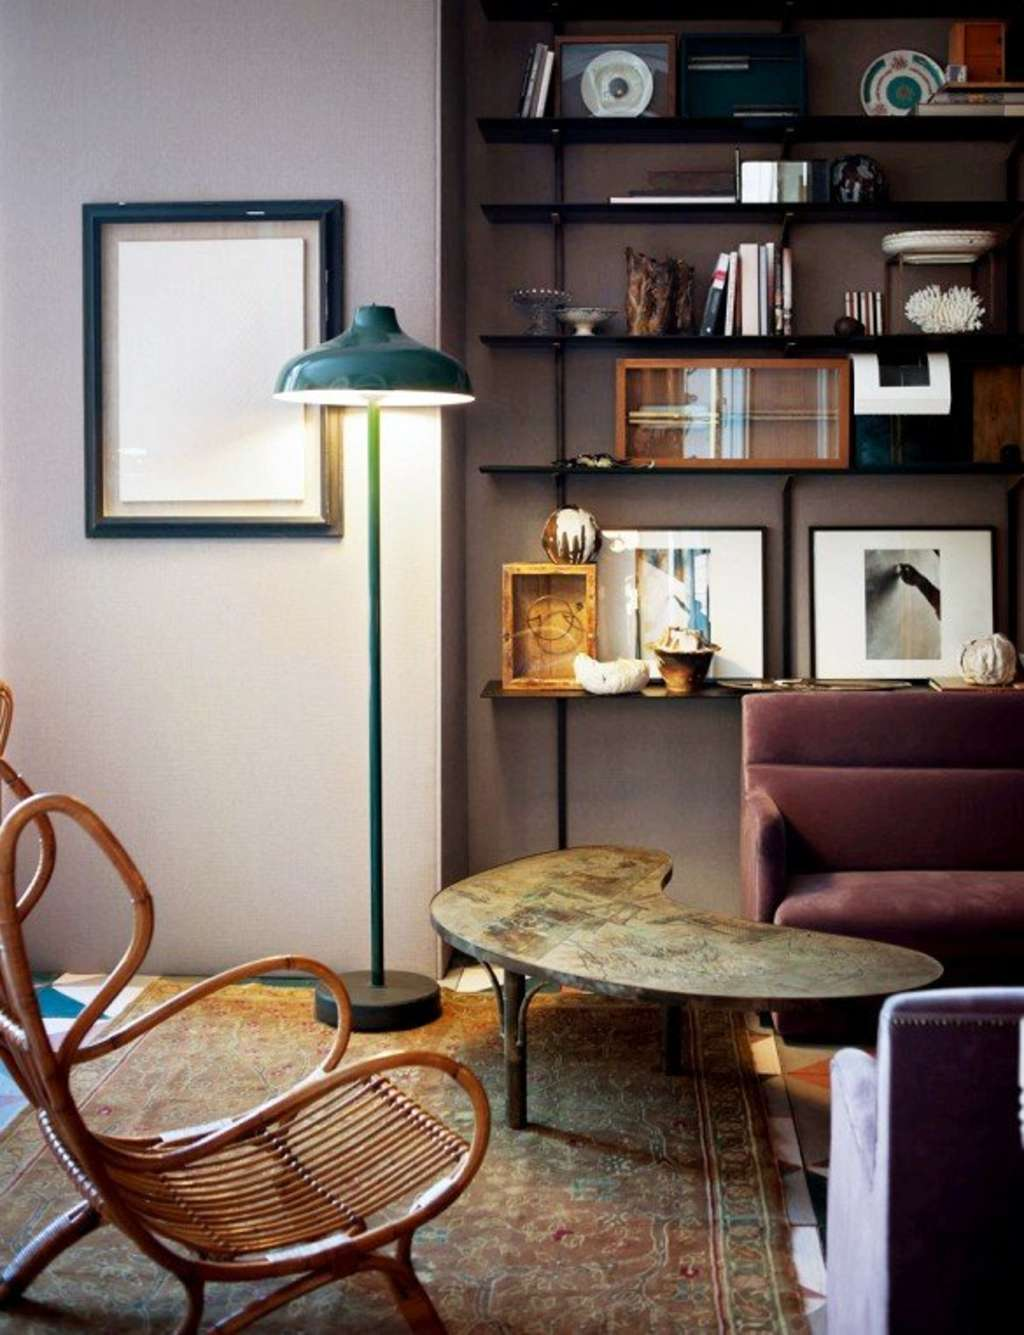 The New Look: 7 Ways to Nail the Latest Interior Styles in Your Home